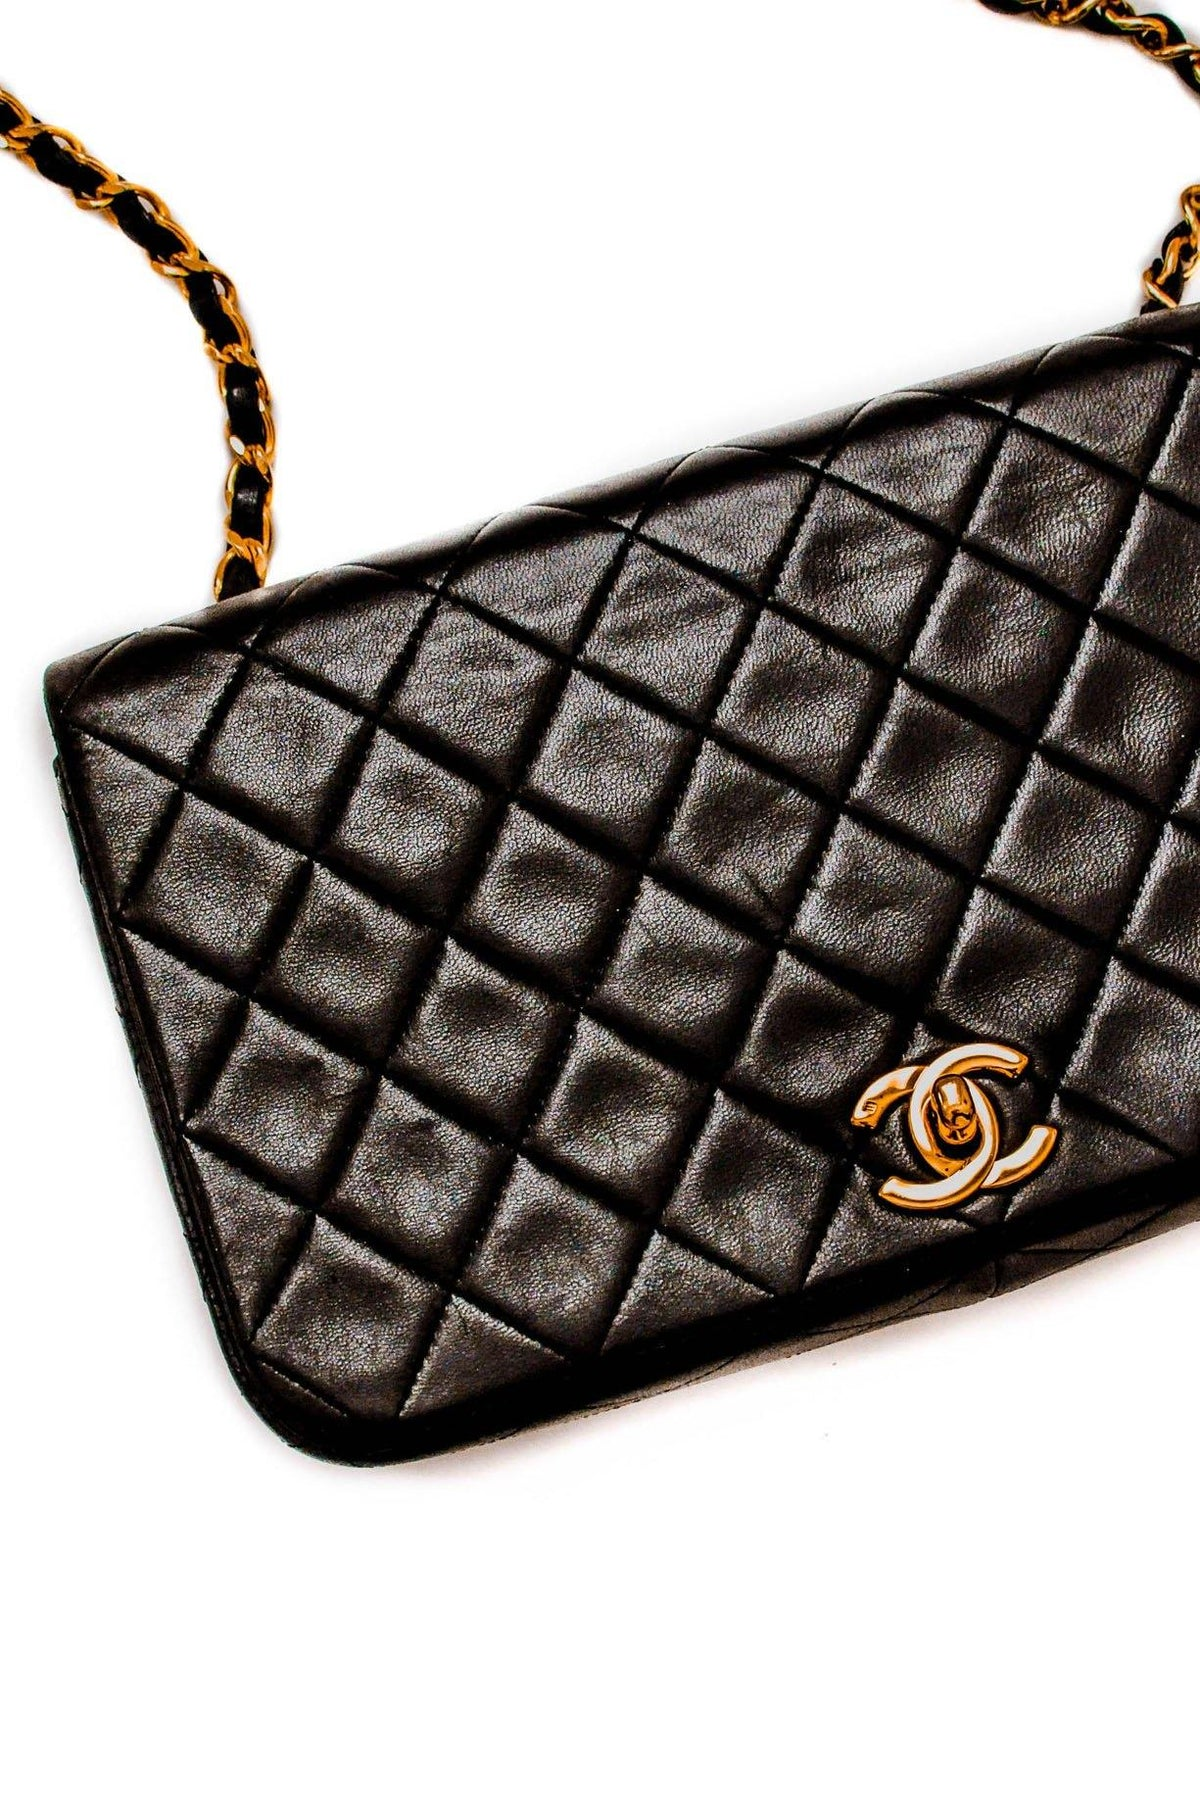 Vintage Chanel CC Full Flap Crossbody Bag from Sweet and Spark